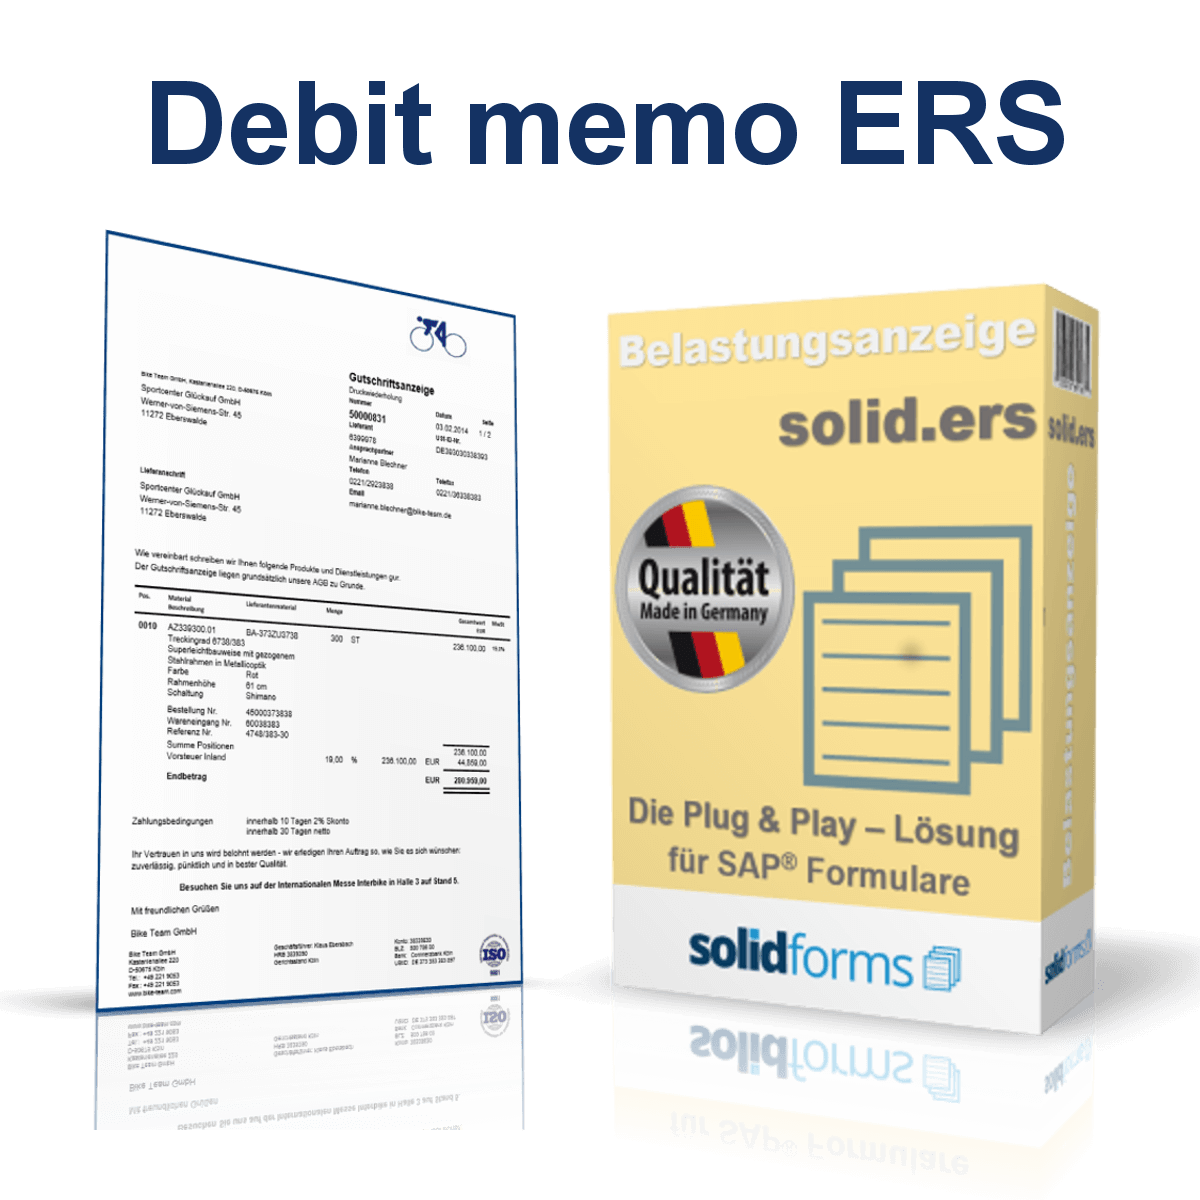 sap form Sap partnered with zebra to provide bar coding functionality so users can work in their smart forms environment to meet all document & label design needs.